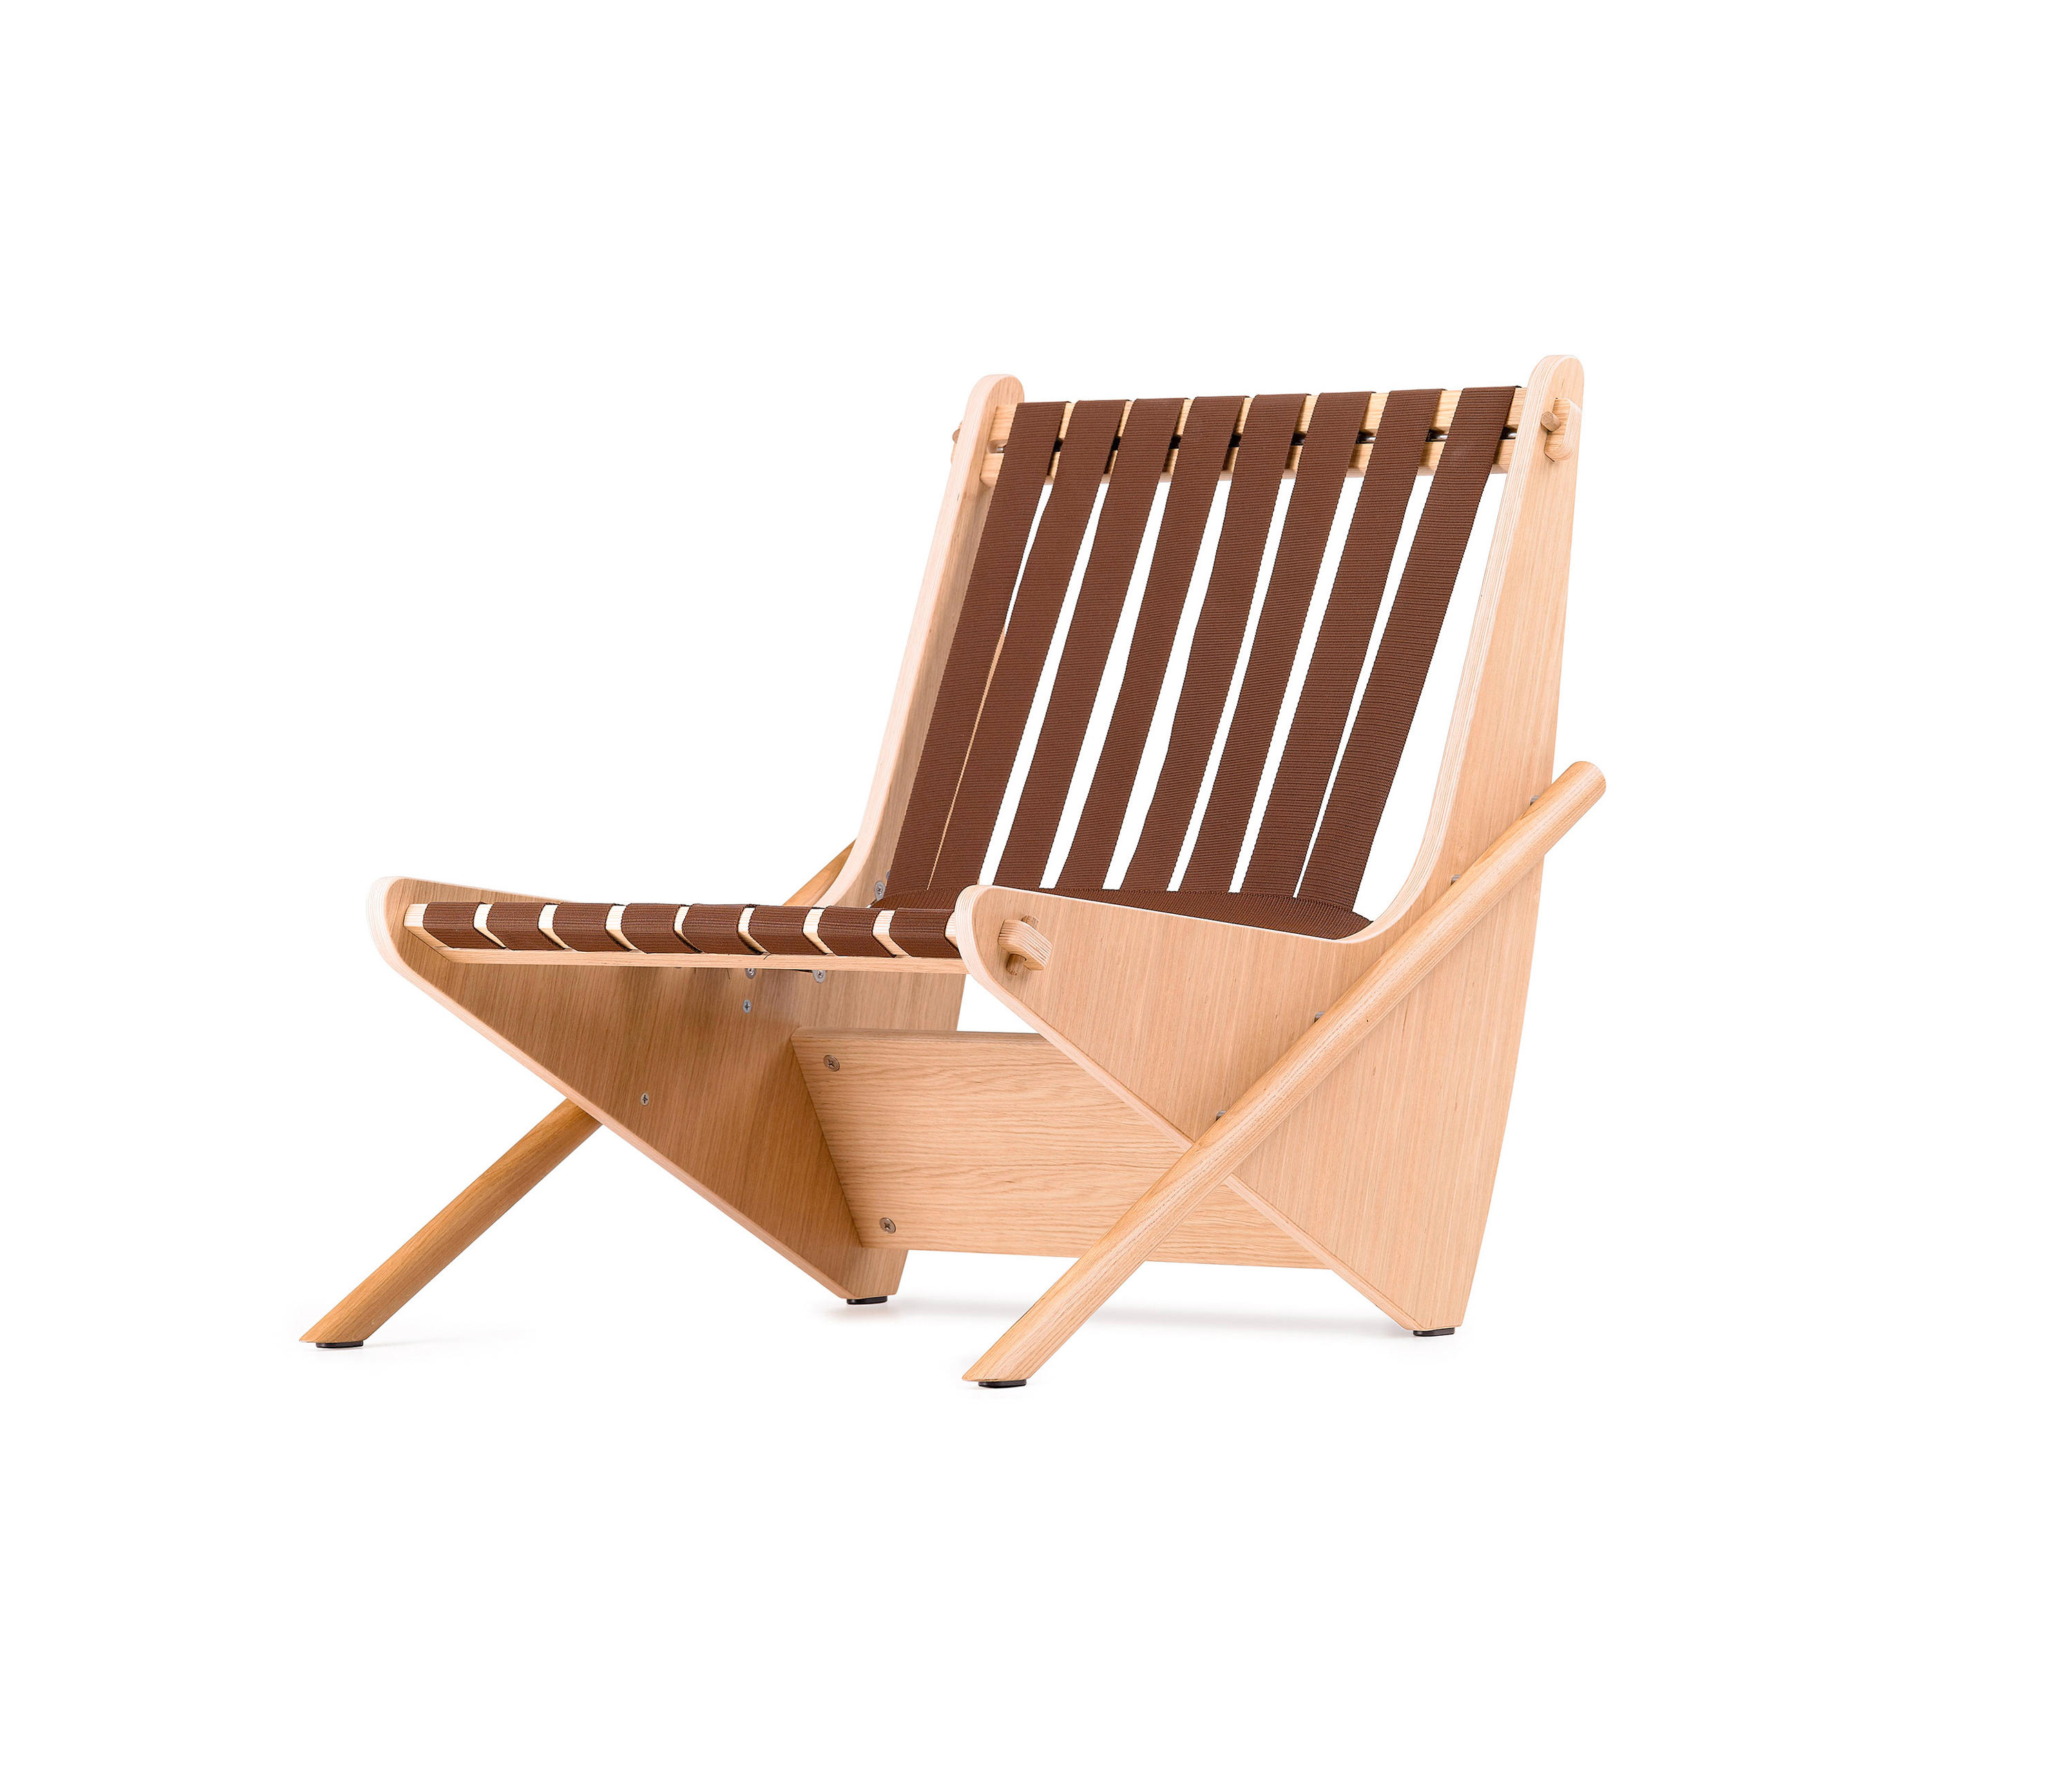 Boomerang chair armchairs from vs architonic for Chair vs chairman